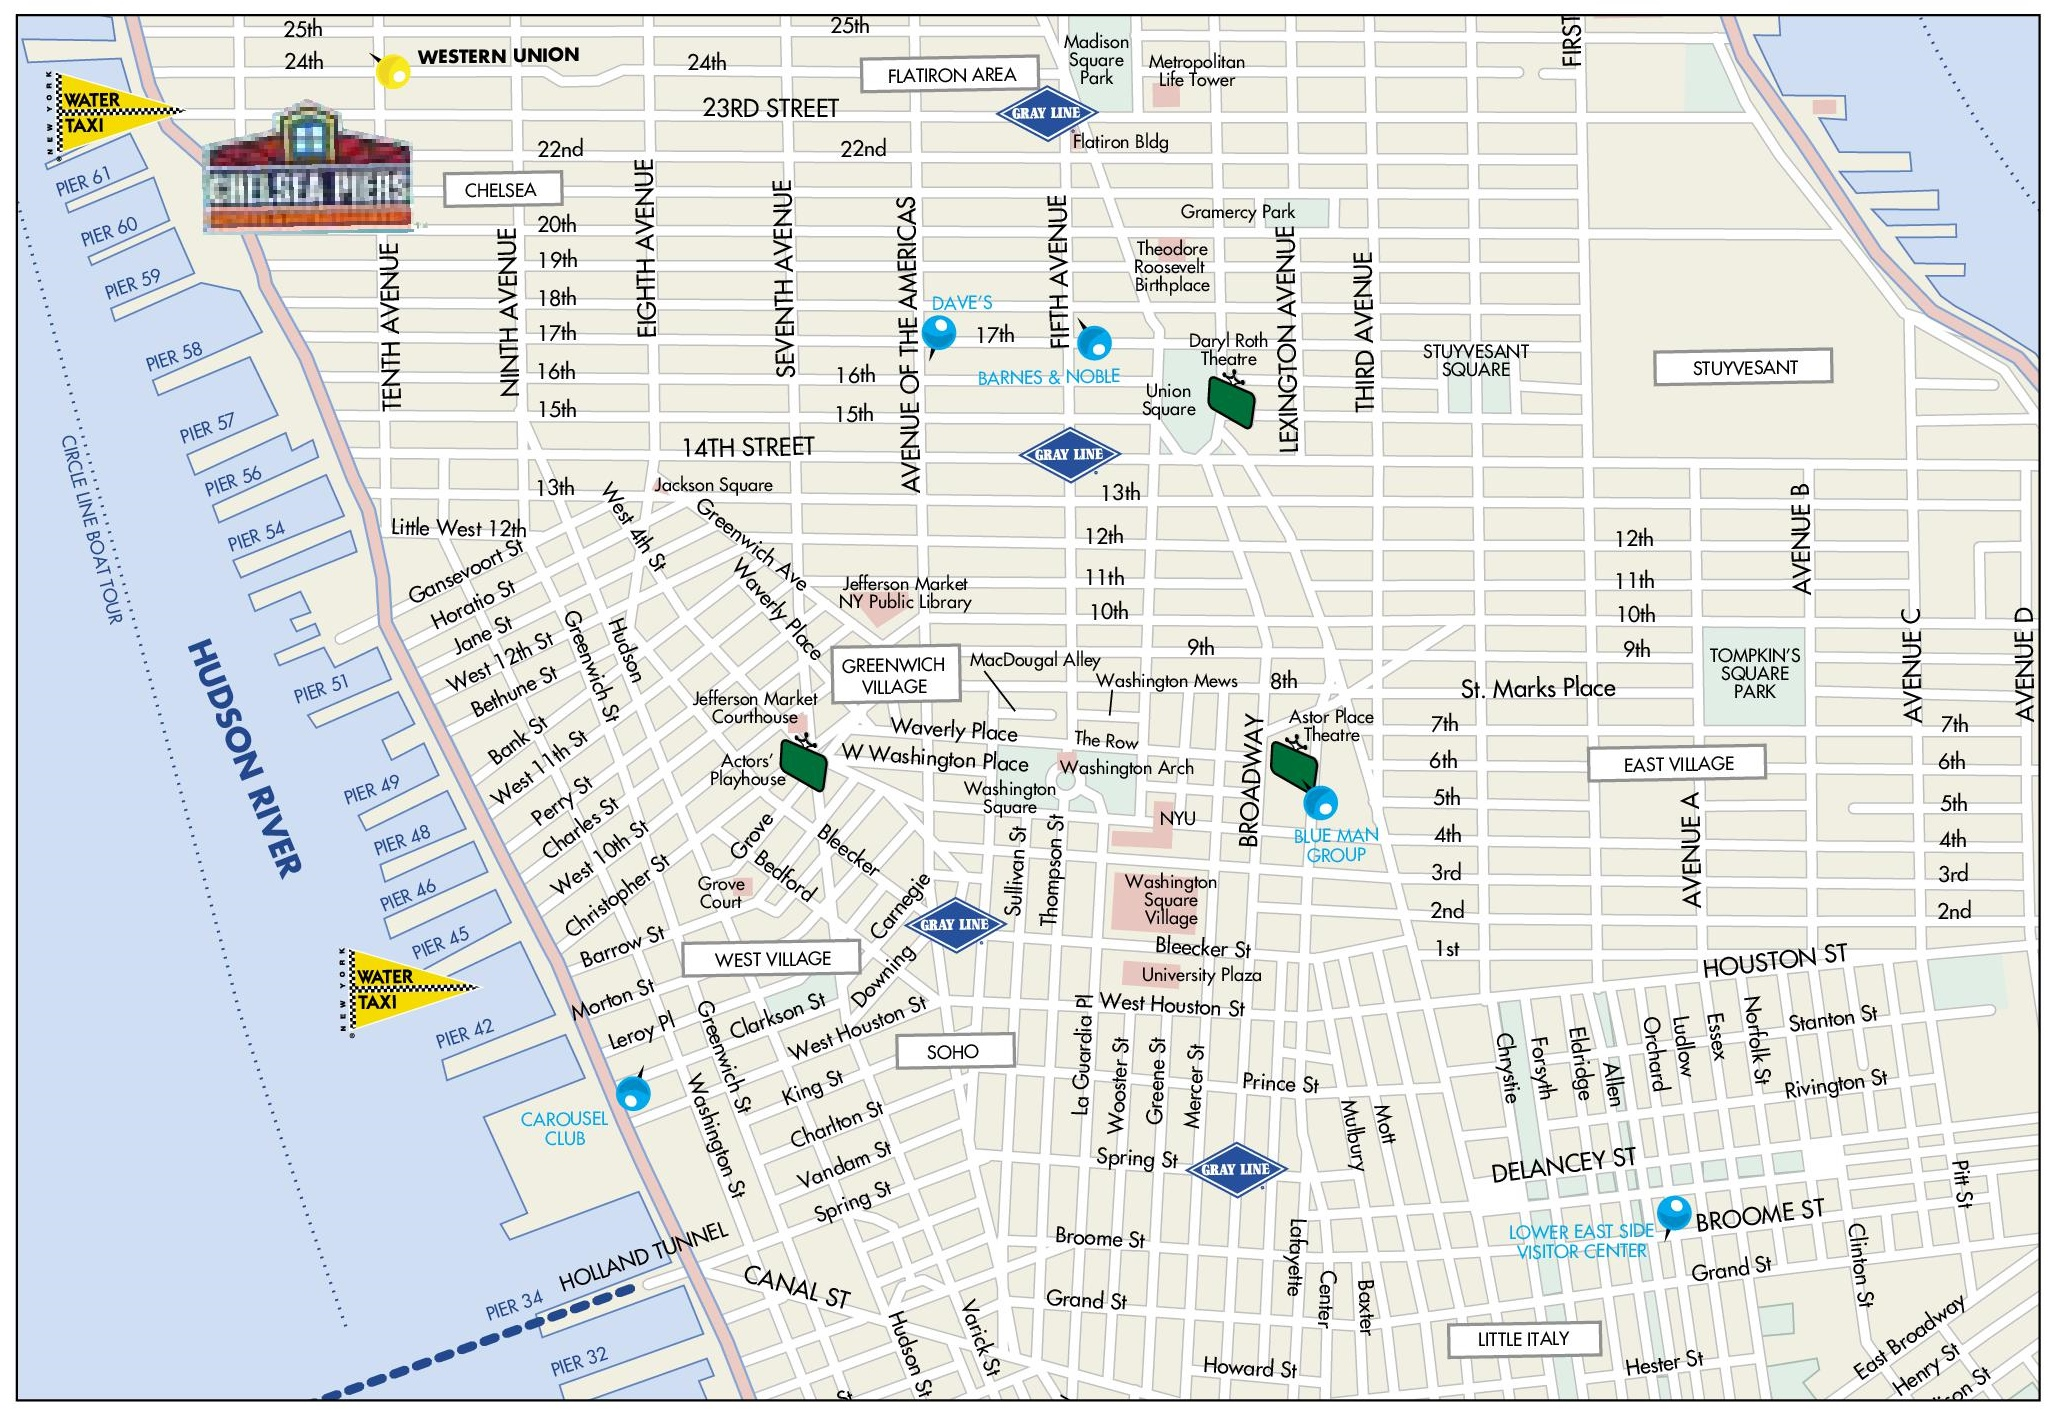 Map Of Greenwich Village Map of Greenwich Village, Chelsea, Soho and Little Italy Map Of Greenwich Village